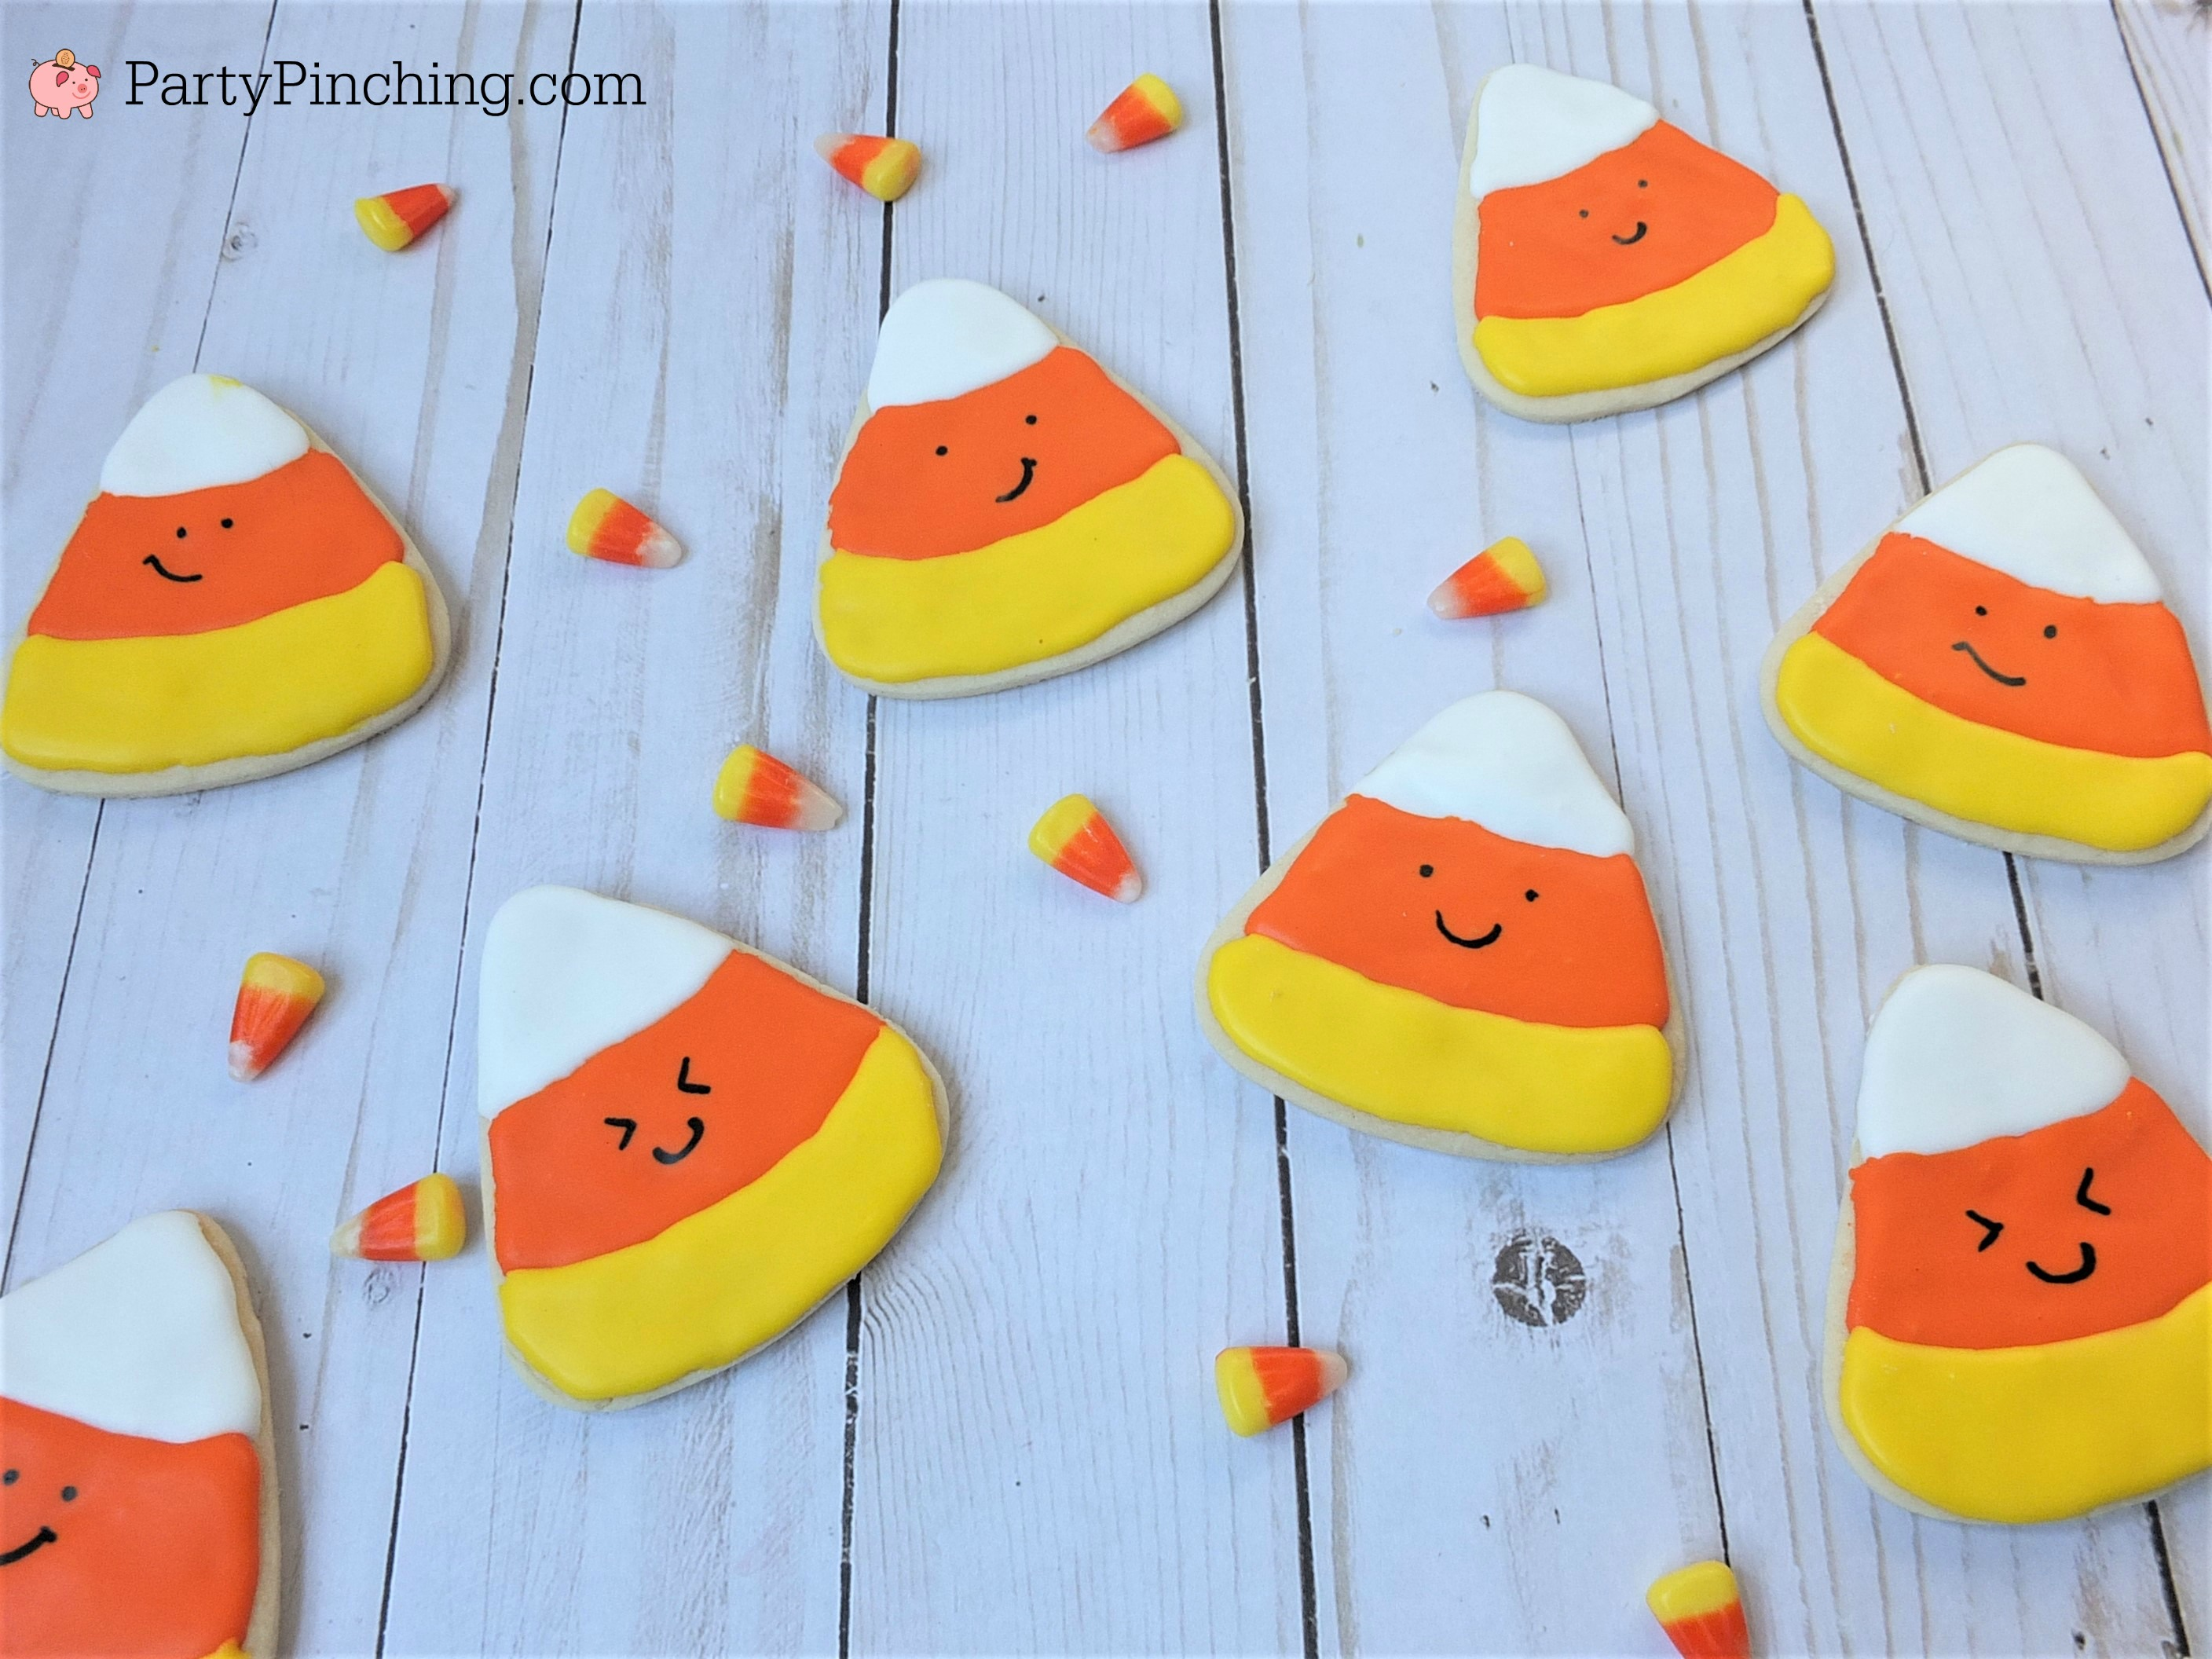 Halloween sugar cookies decorated royal icing, ghost banner cookies, cute Halloween cookies, black cat cookies, bat cookies, cute candy corn cookies, cute pumpkin jack o lantern cookies